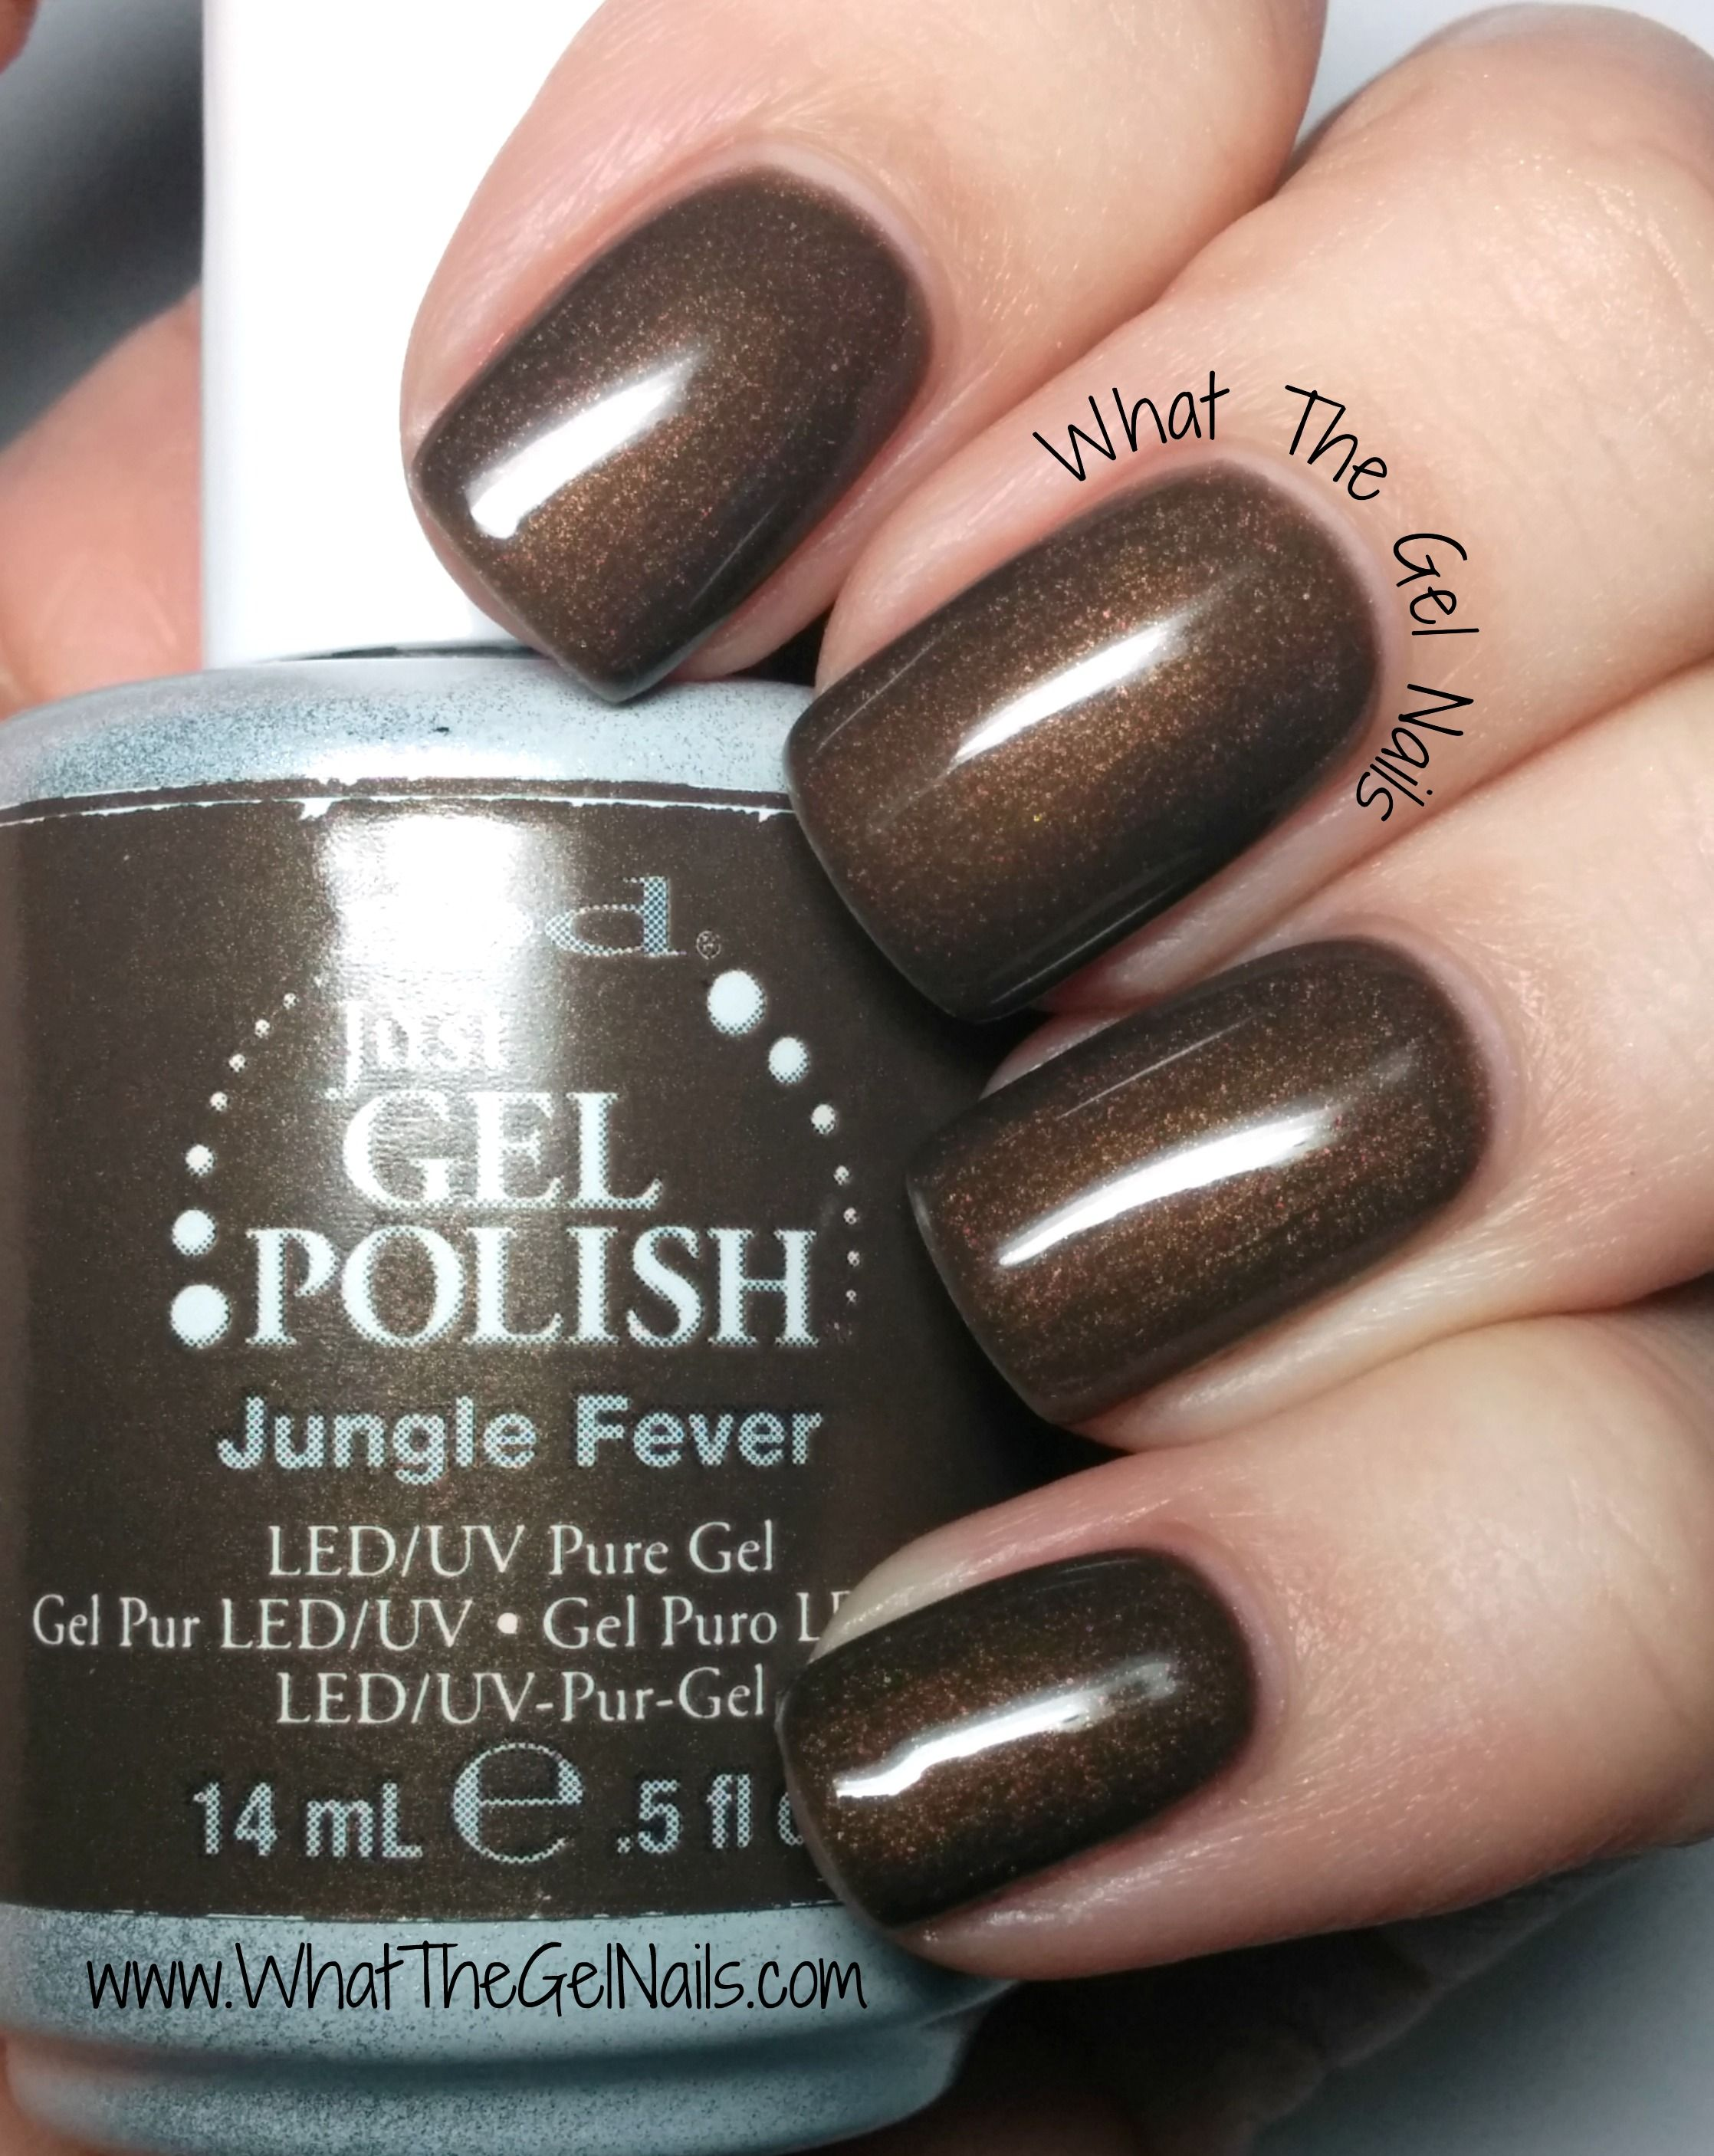 Pin by Santie on Best nails | Pinterest